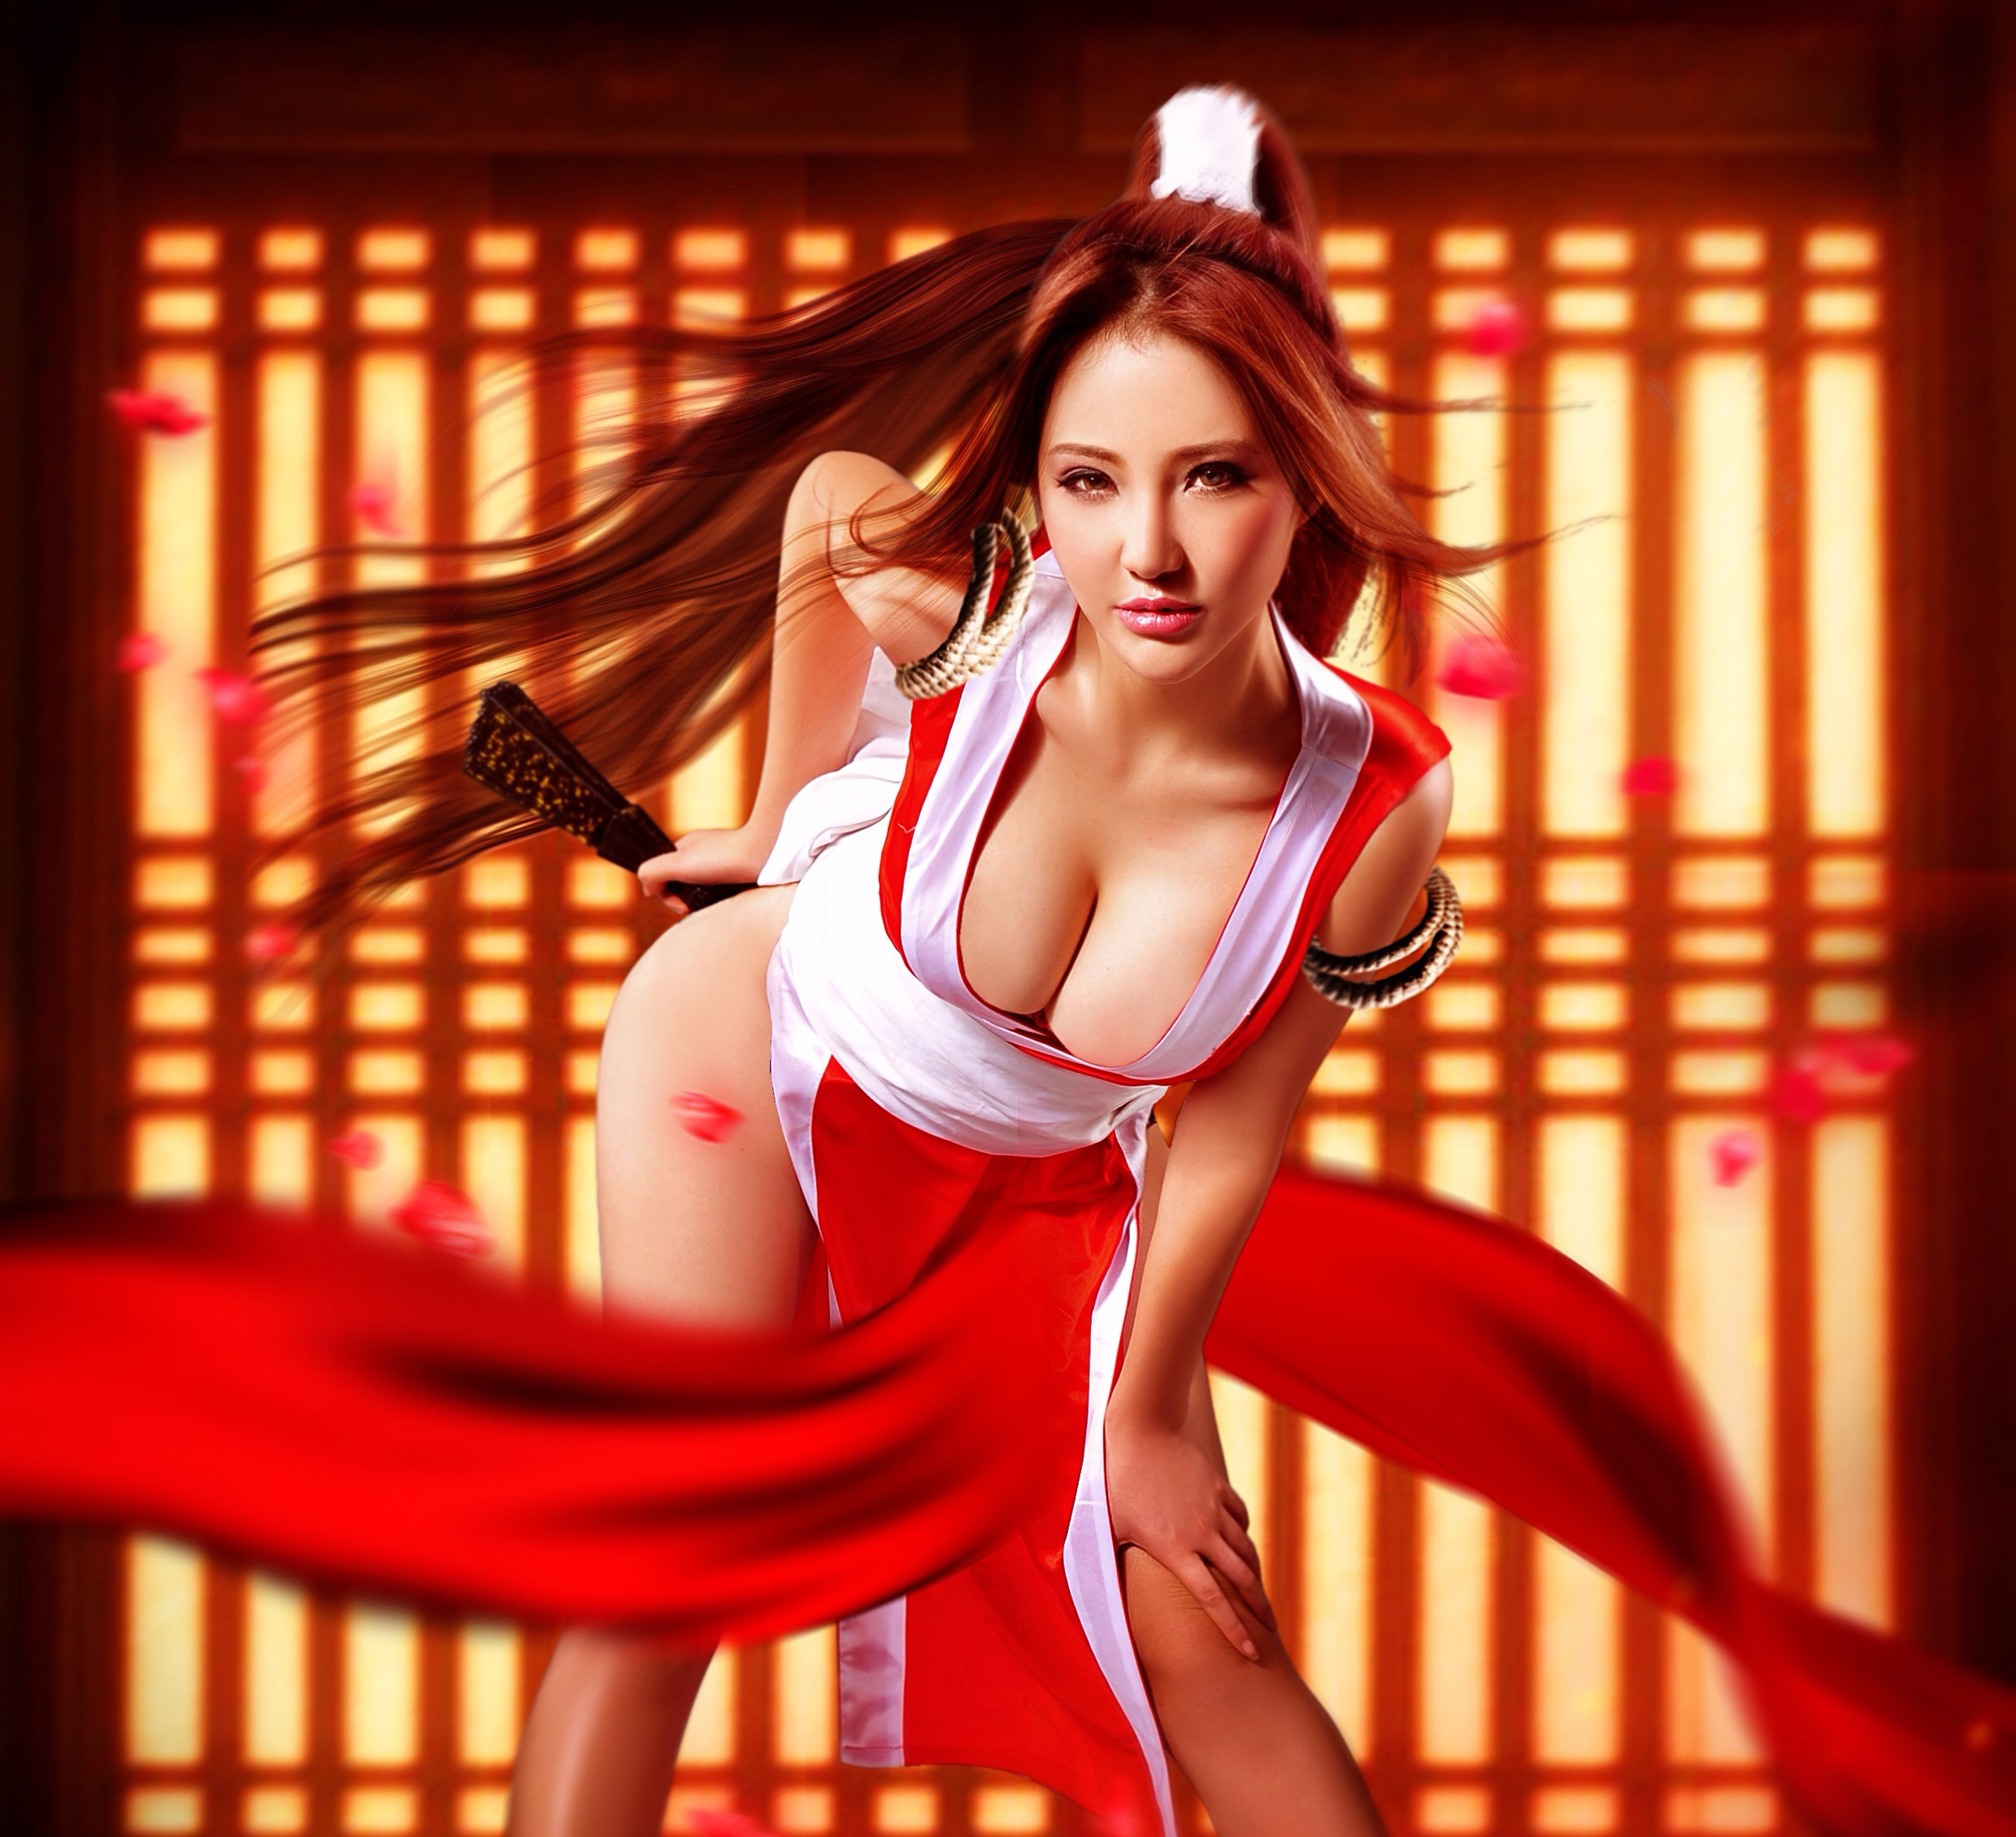 Share The king of fighter sex mai apologise